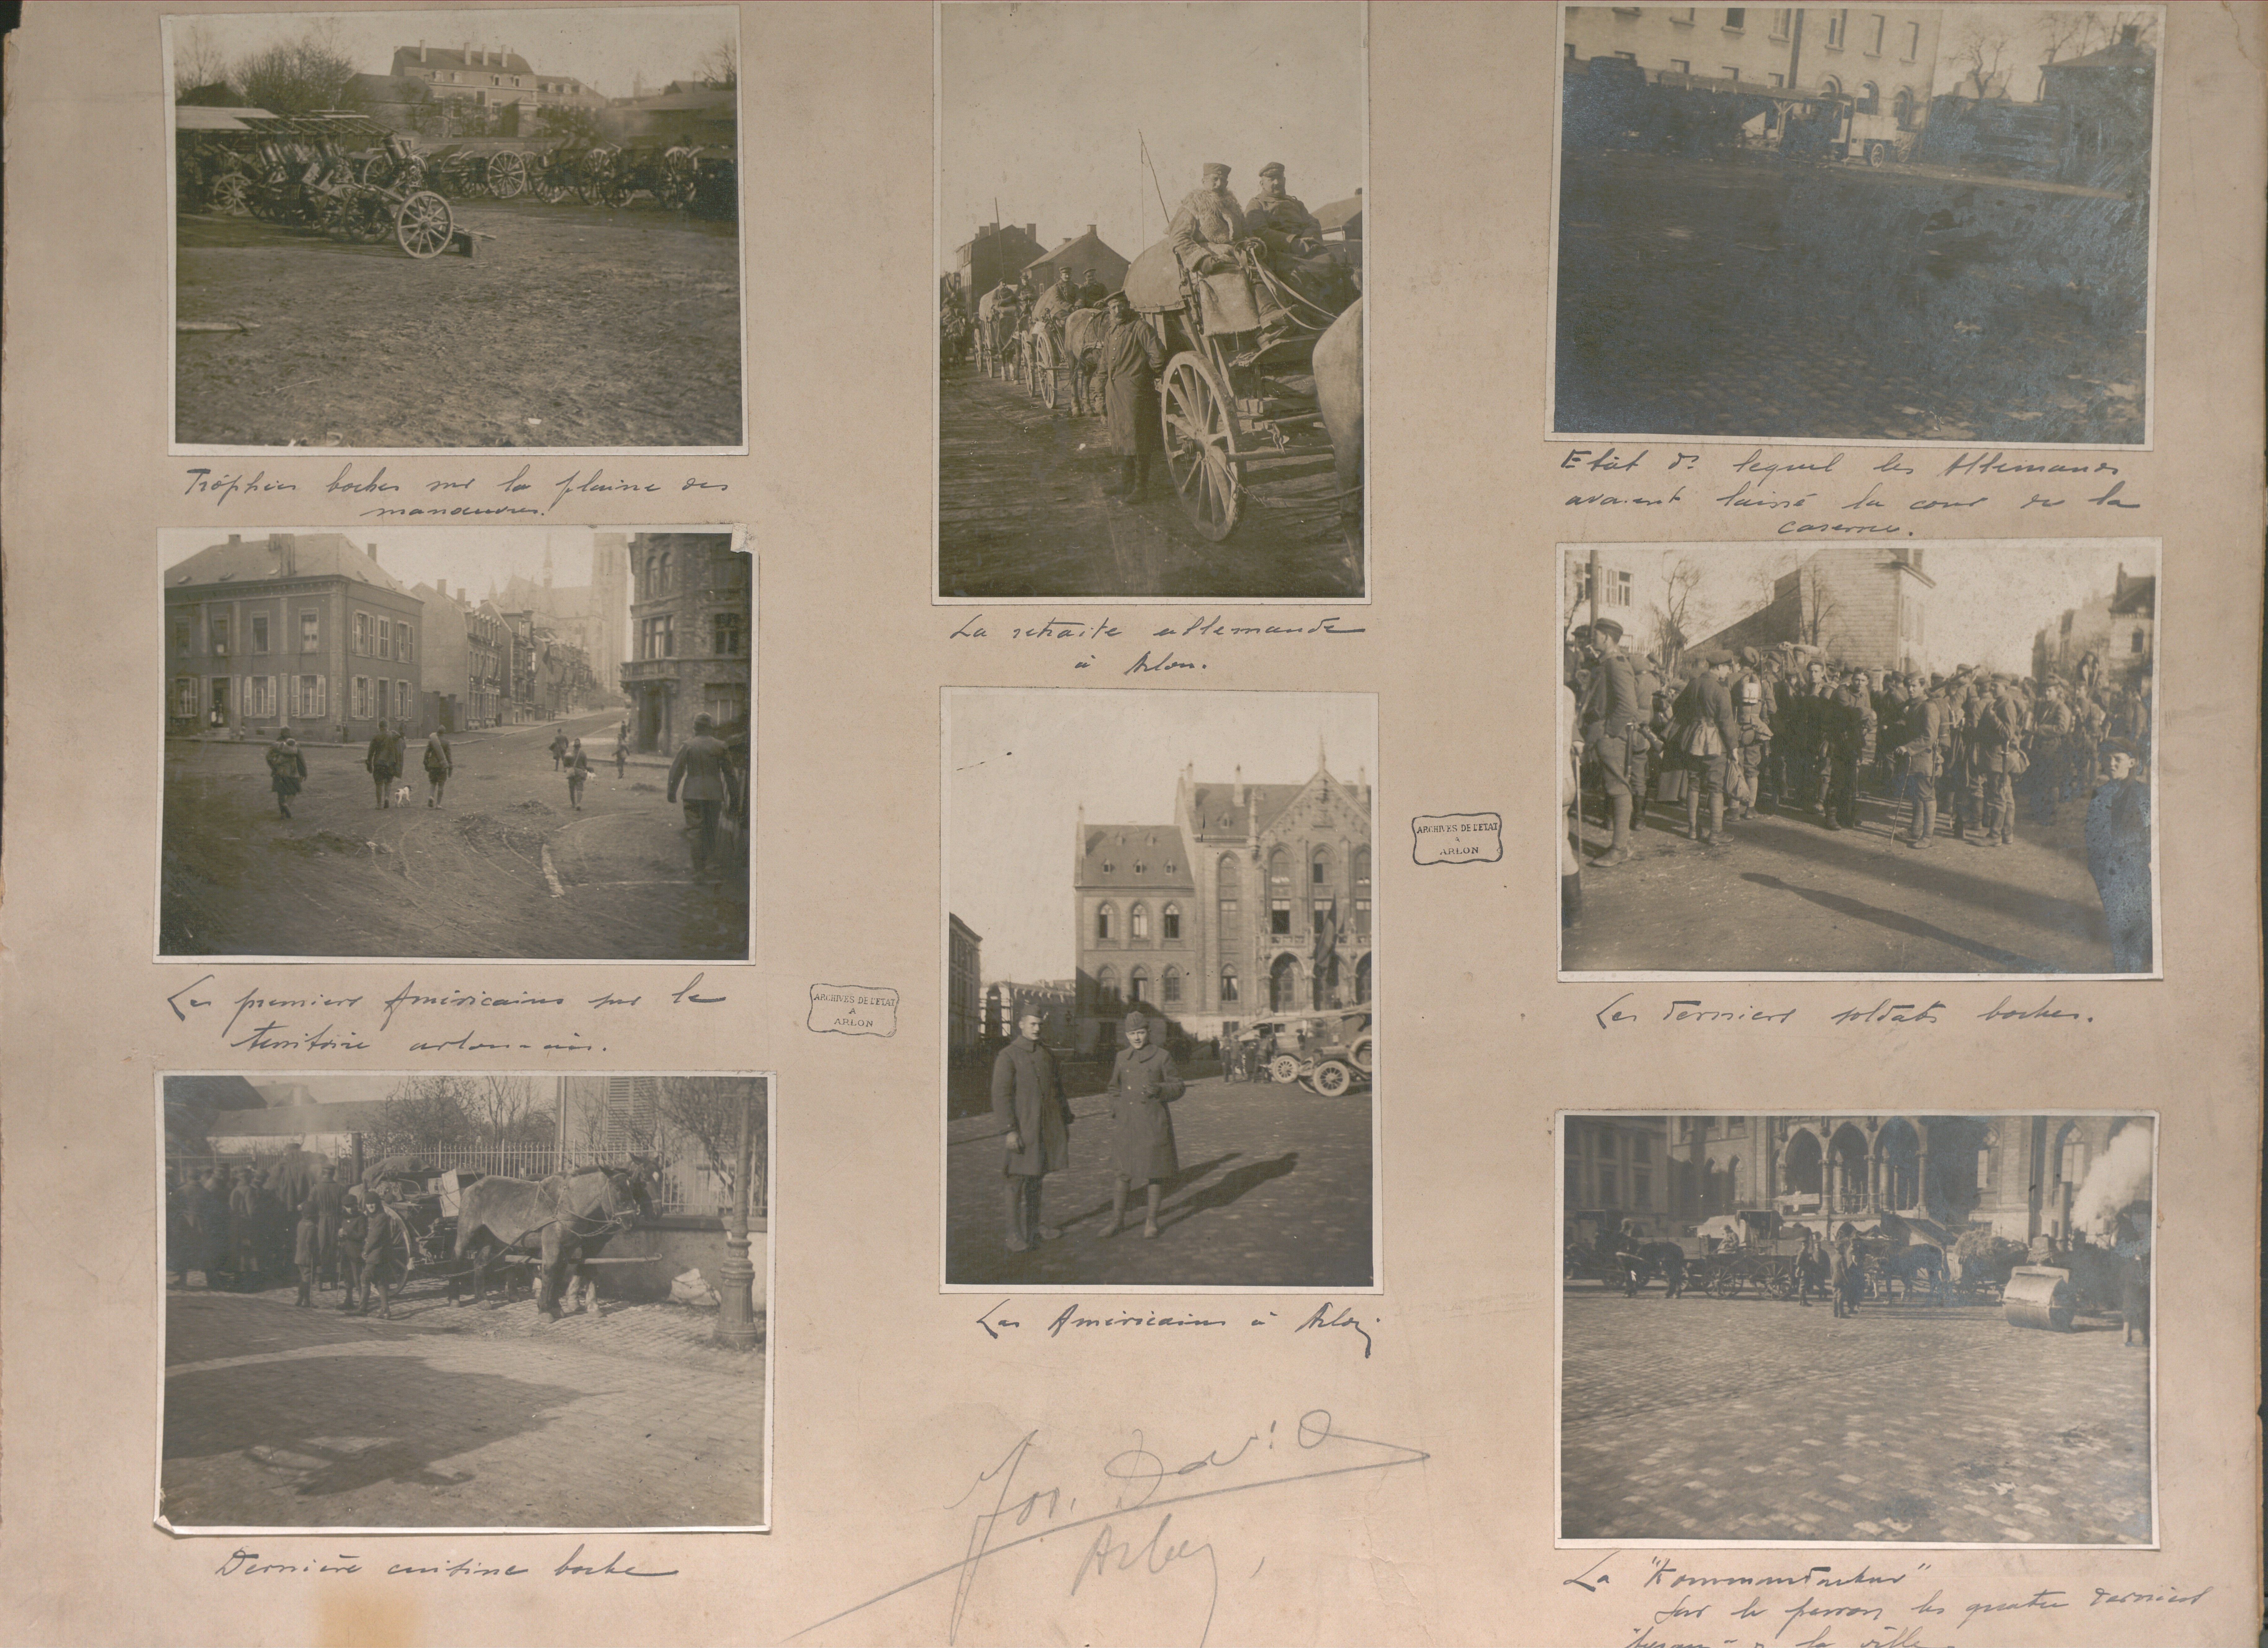 Photographs of German withdrawal and American soldiers in Arlon. State Archives in Arlon, Œuvre nationale des invalides de guerre (ONIG). Section Arlon-Virton (photos by Jos David, photographer in Arlon). (E/4/025), no. 5, © State Archives.  #CRLF#